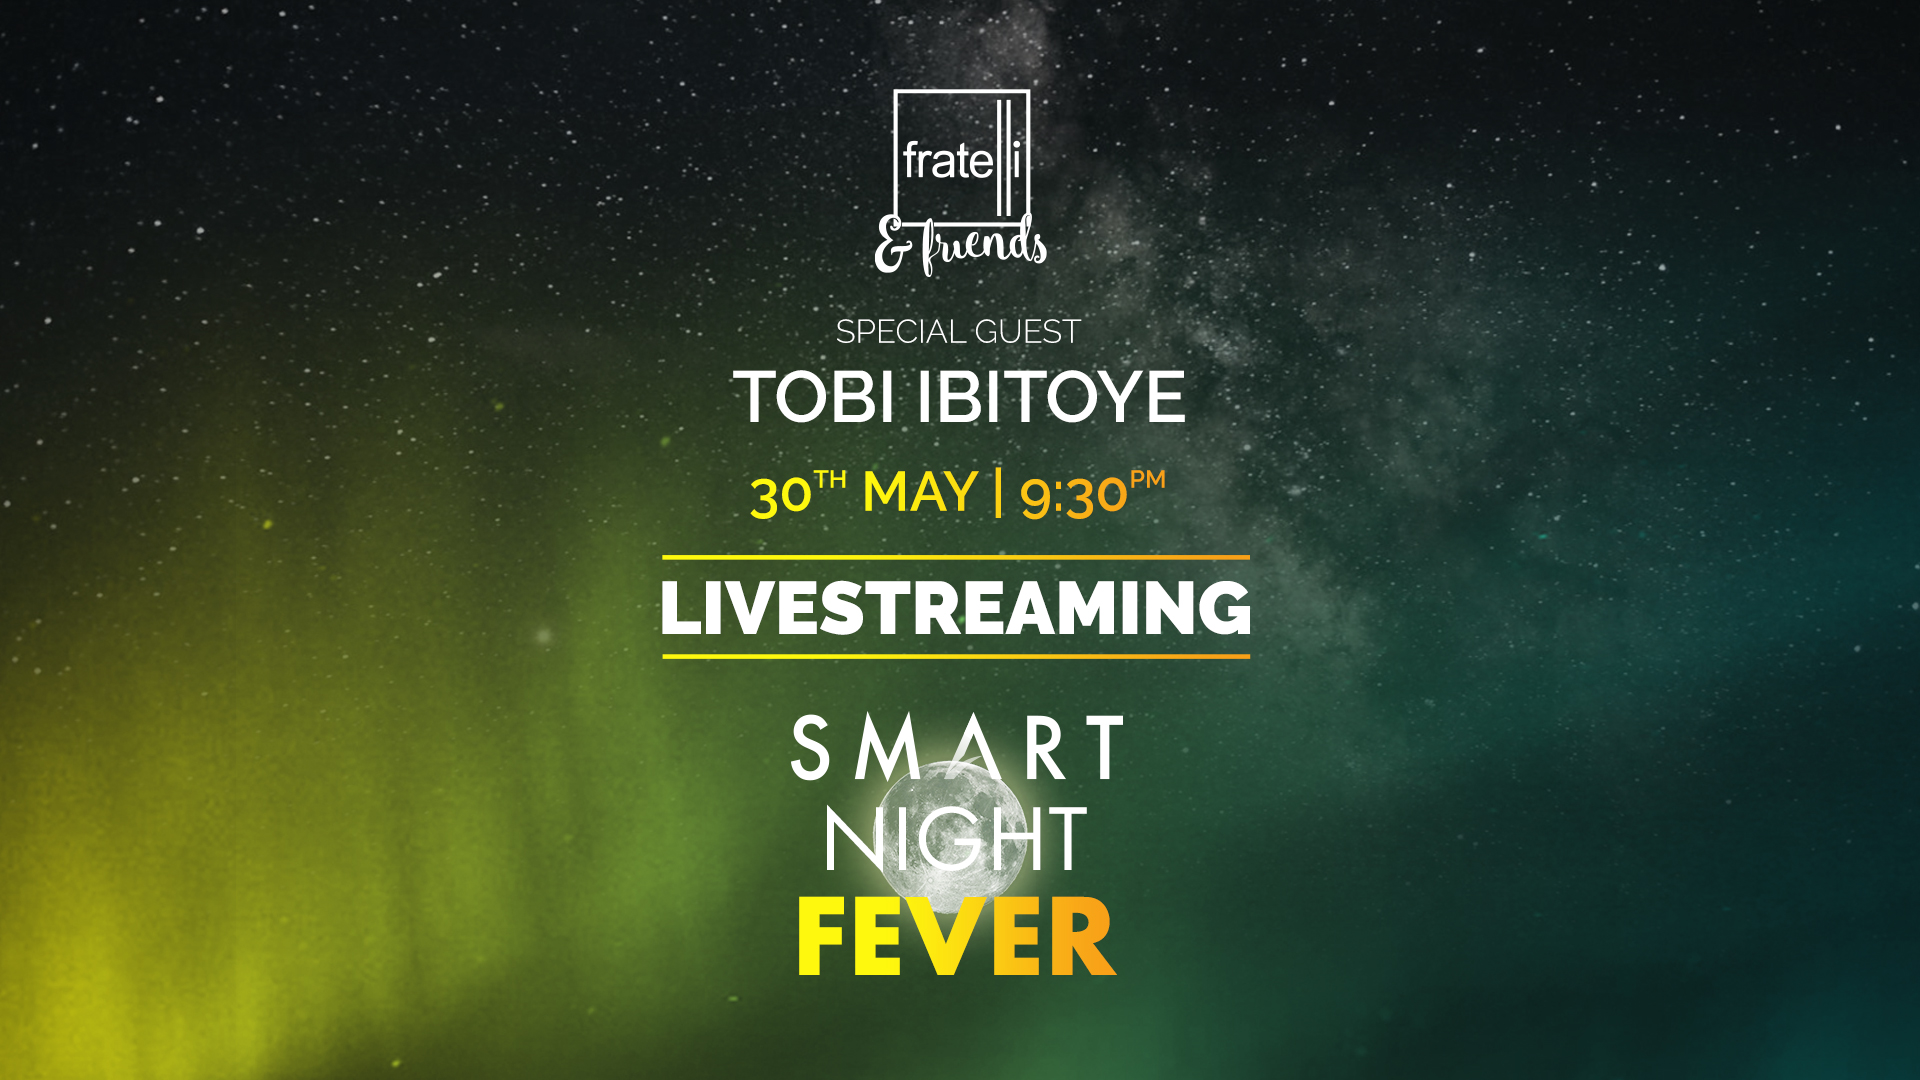 SMART NIGHT FEVER – Party Fratelli Social Events. Special Guest Tobi Ibitoye